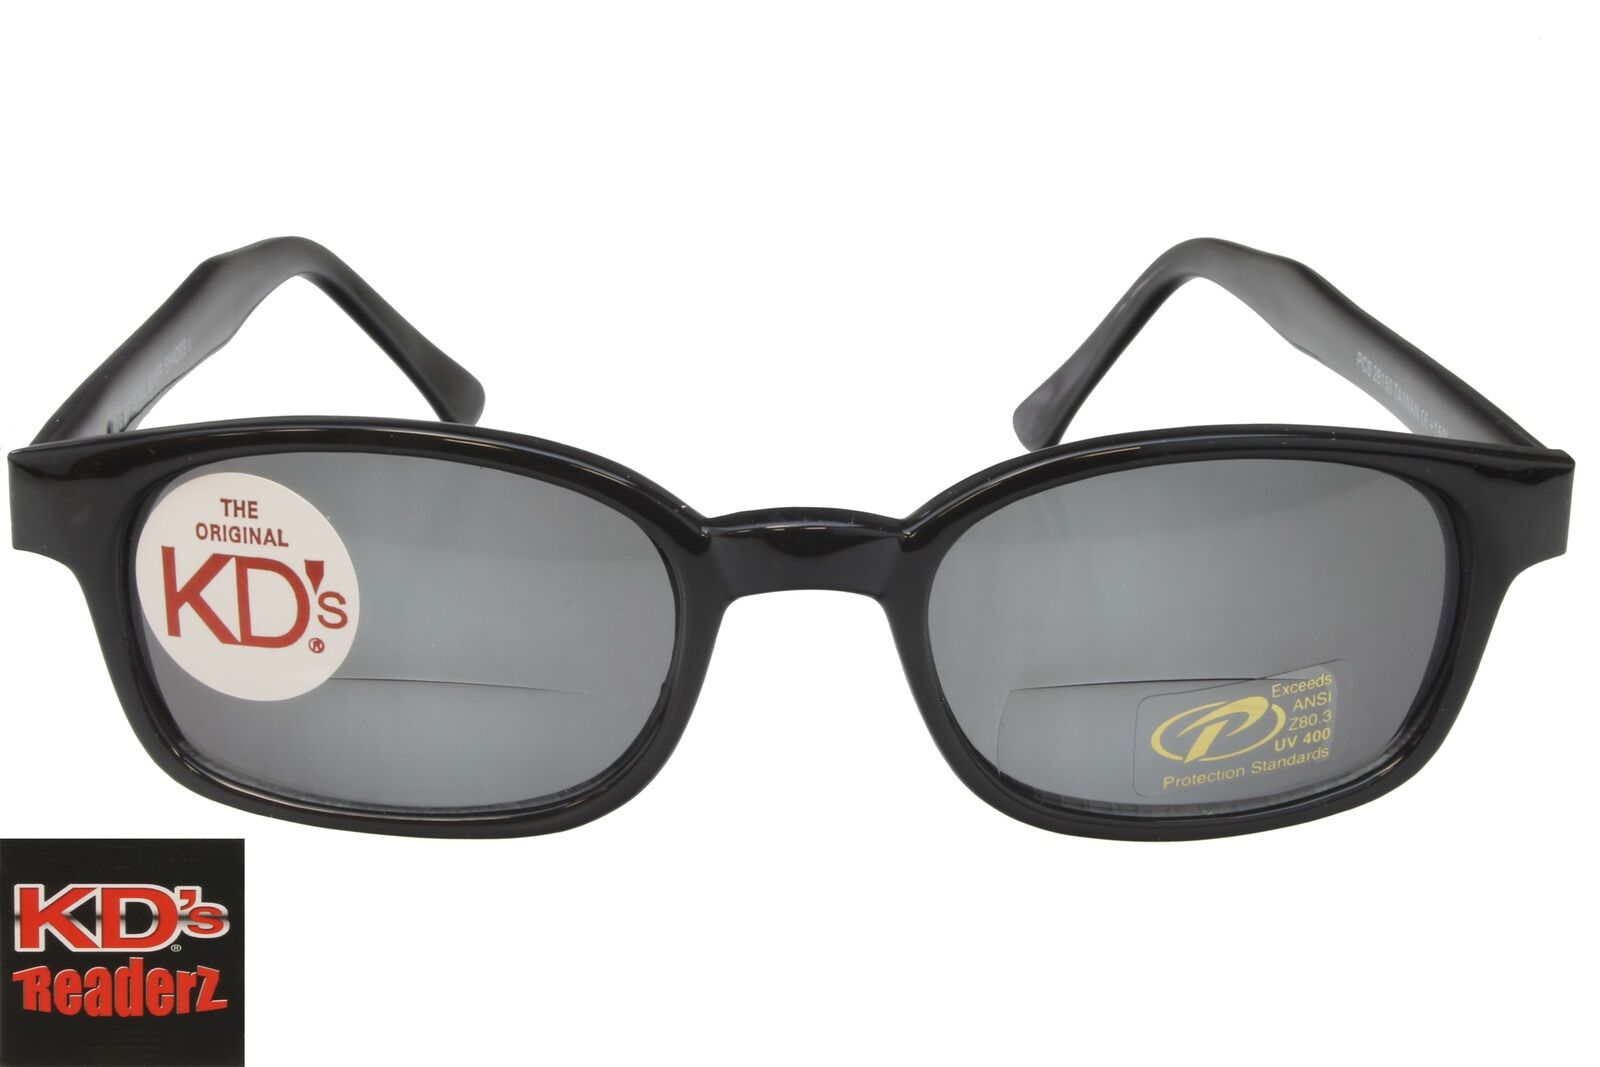 2102f9fdee15 Details about KD s Readers Bifocal Glasses Readerz Smoke Gray Motorcycle  Sunglasses 2.00 28200